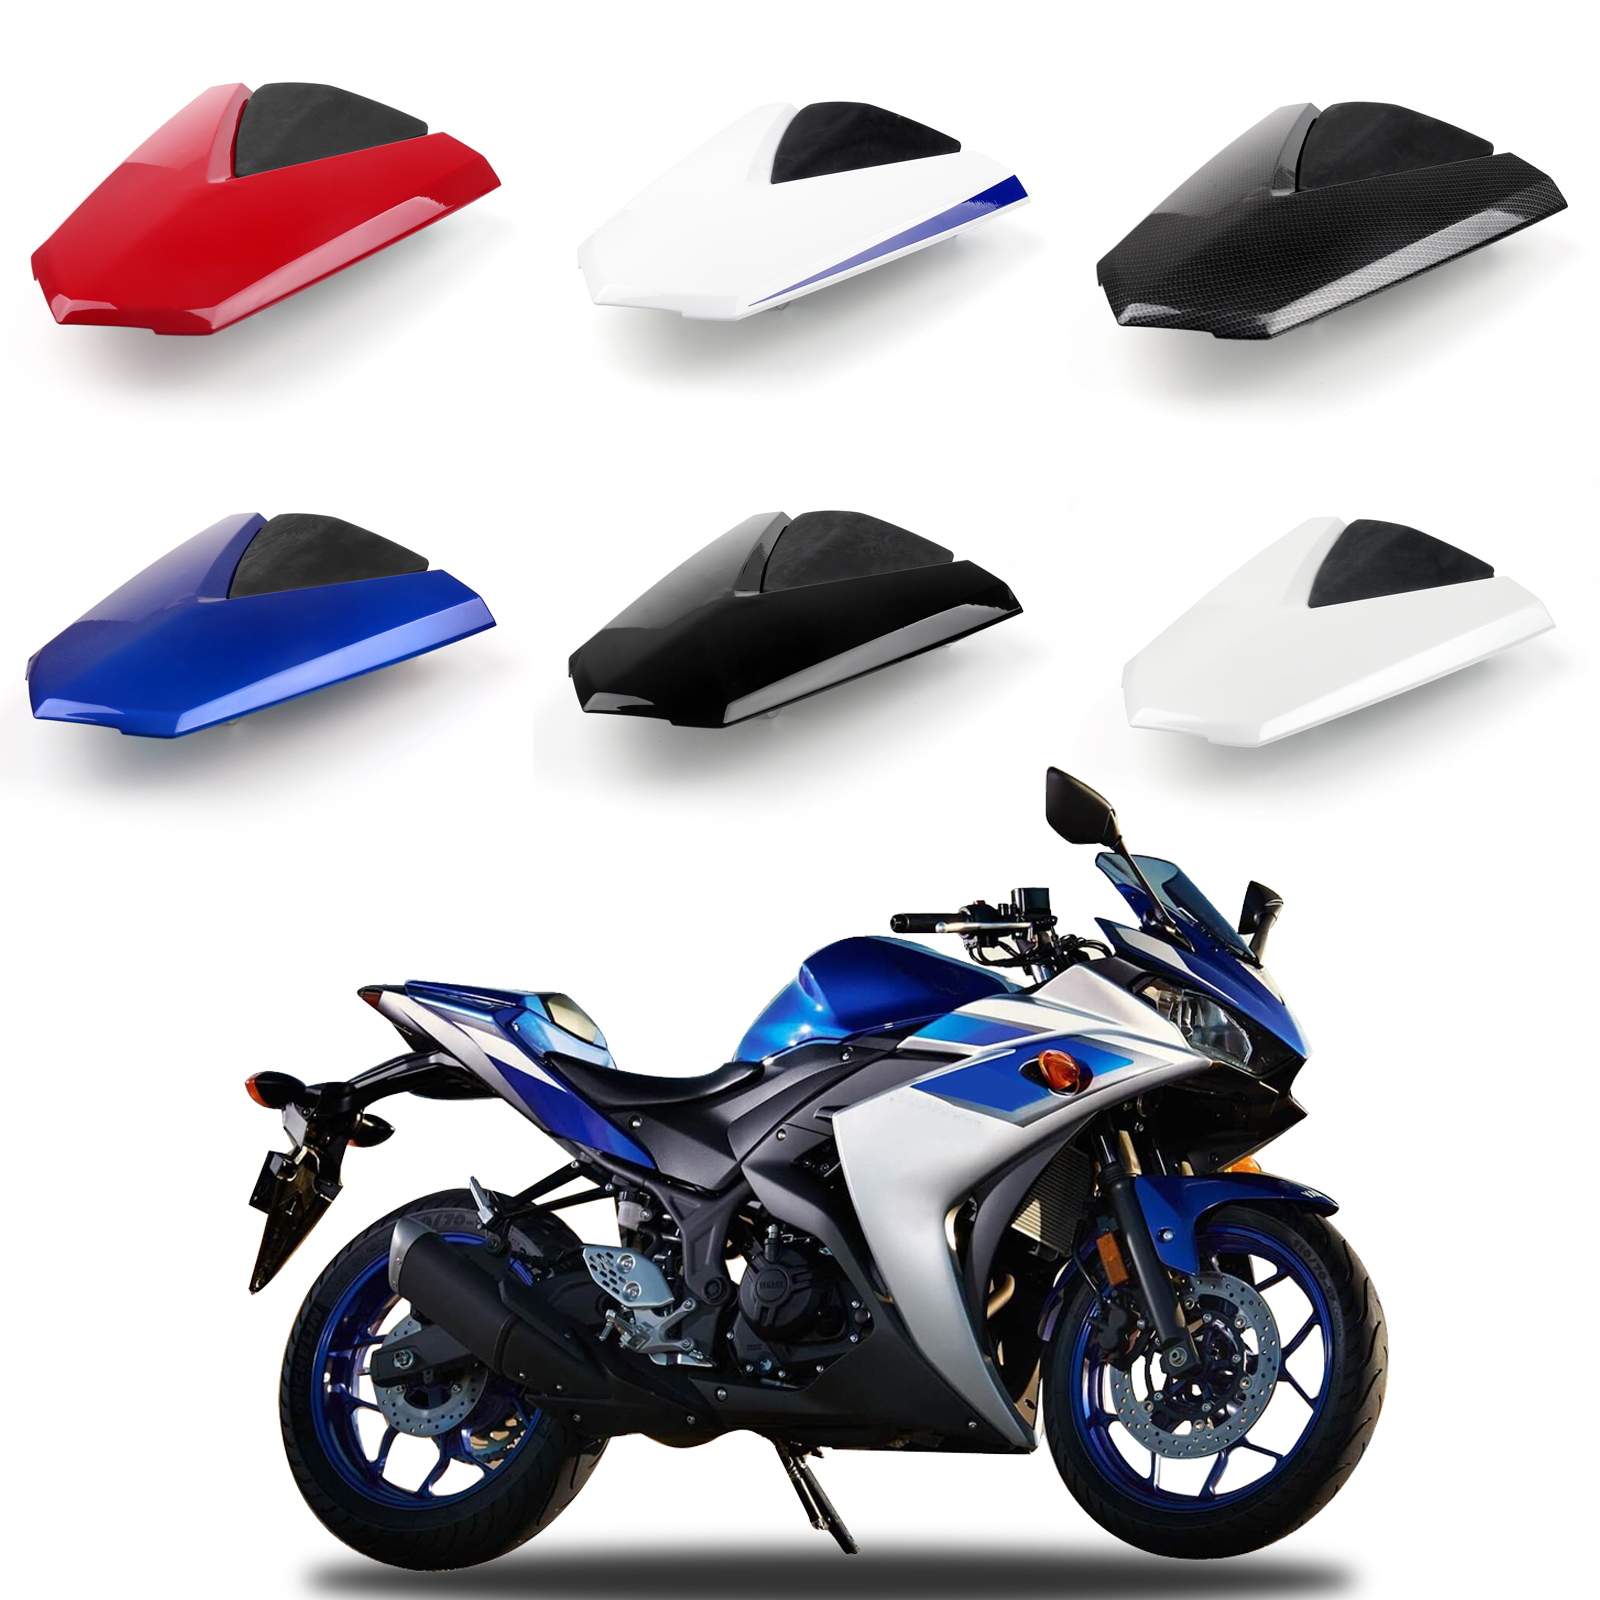 Areyourshop Motorcycle ABS Plastic Solo Rear Seat Cover Cowl For For Yamaha YZF R25 2013-2016 R3 2015-2016 MT-03 2014 Styling